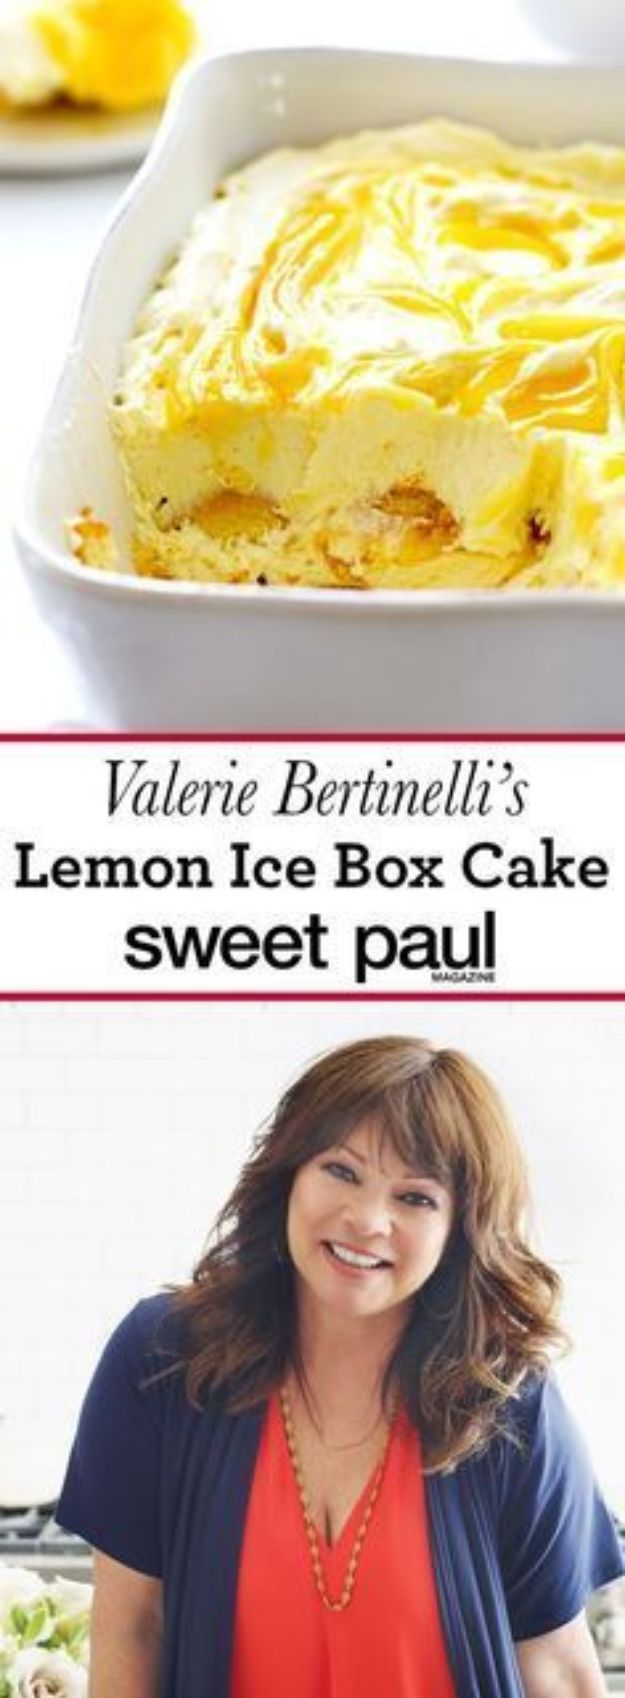 Celebrity Inspired Recipes - Valerie Bertinelli's Lemon Ice Box Cake - Healthy Dinners, Pies, Sweets and Desserts, Cooking for Families and Holidays - Crock Pot Treats